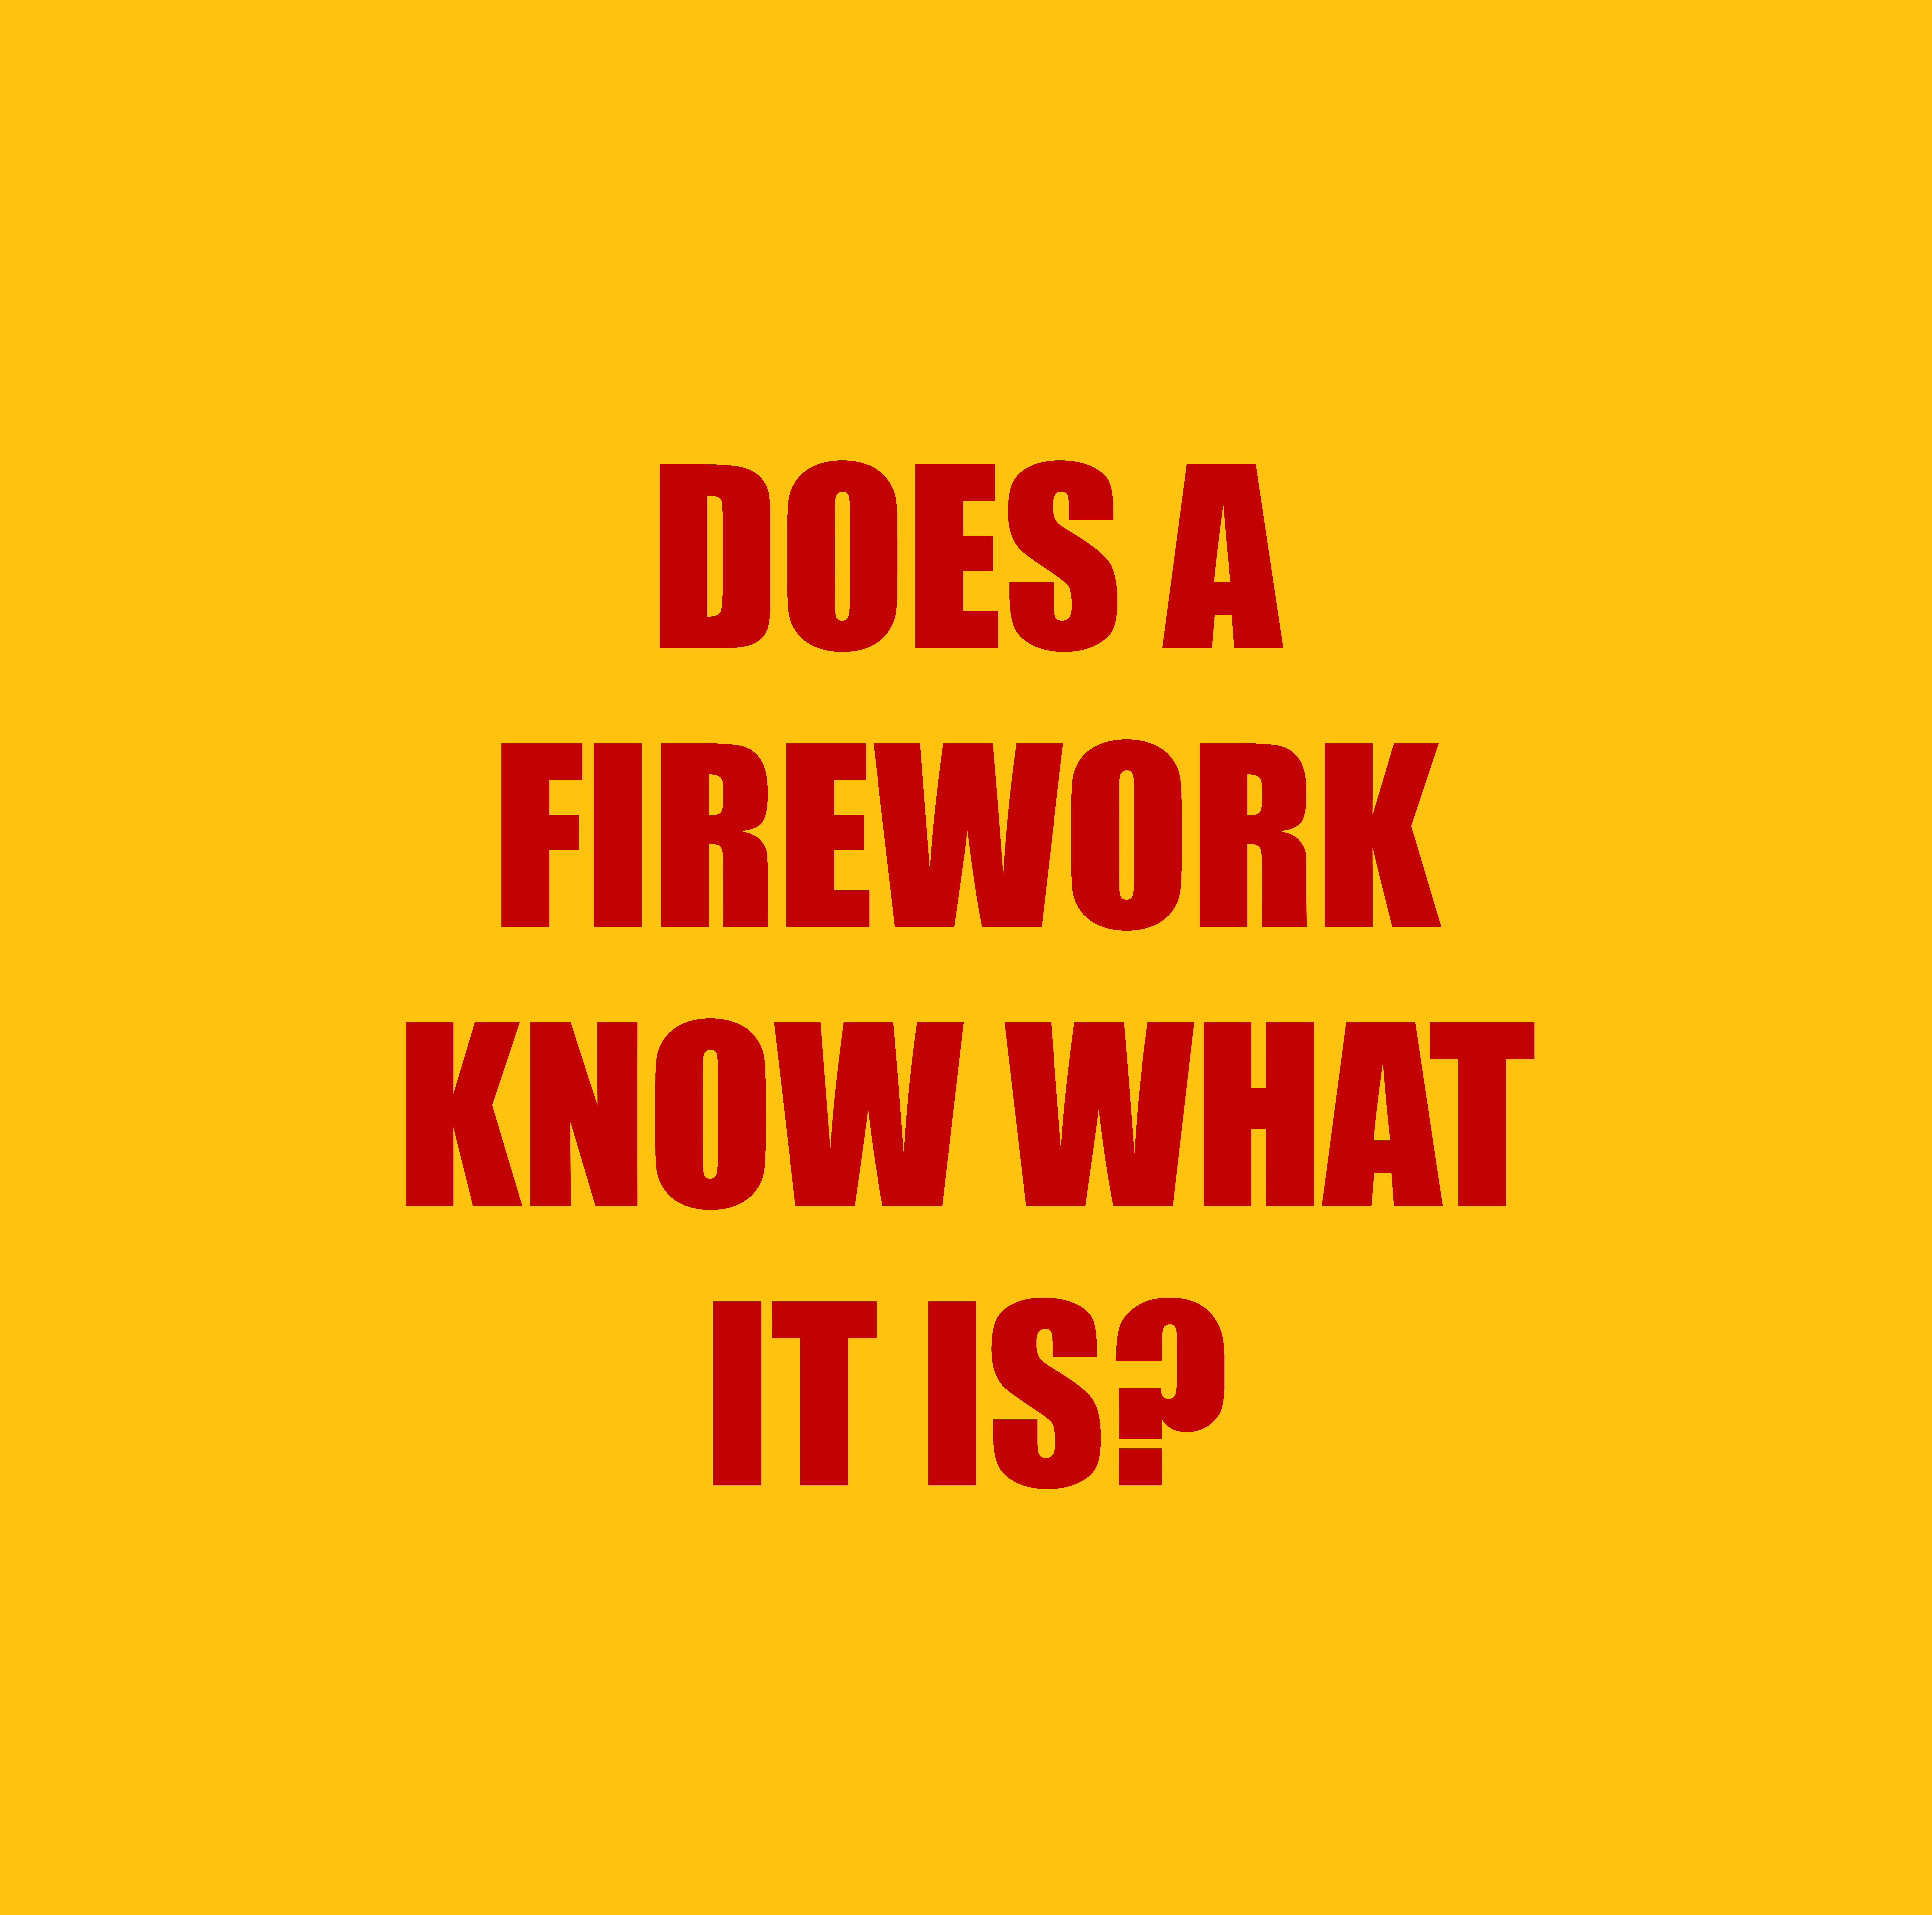 DOES A FIREWORK KNOW WHAT IT IS?